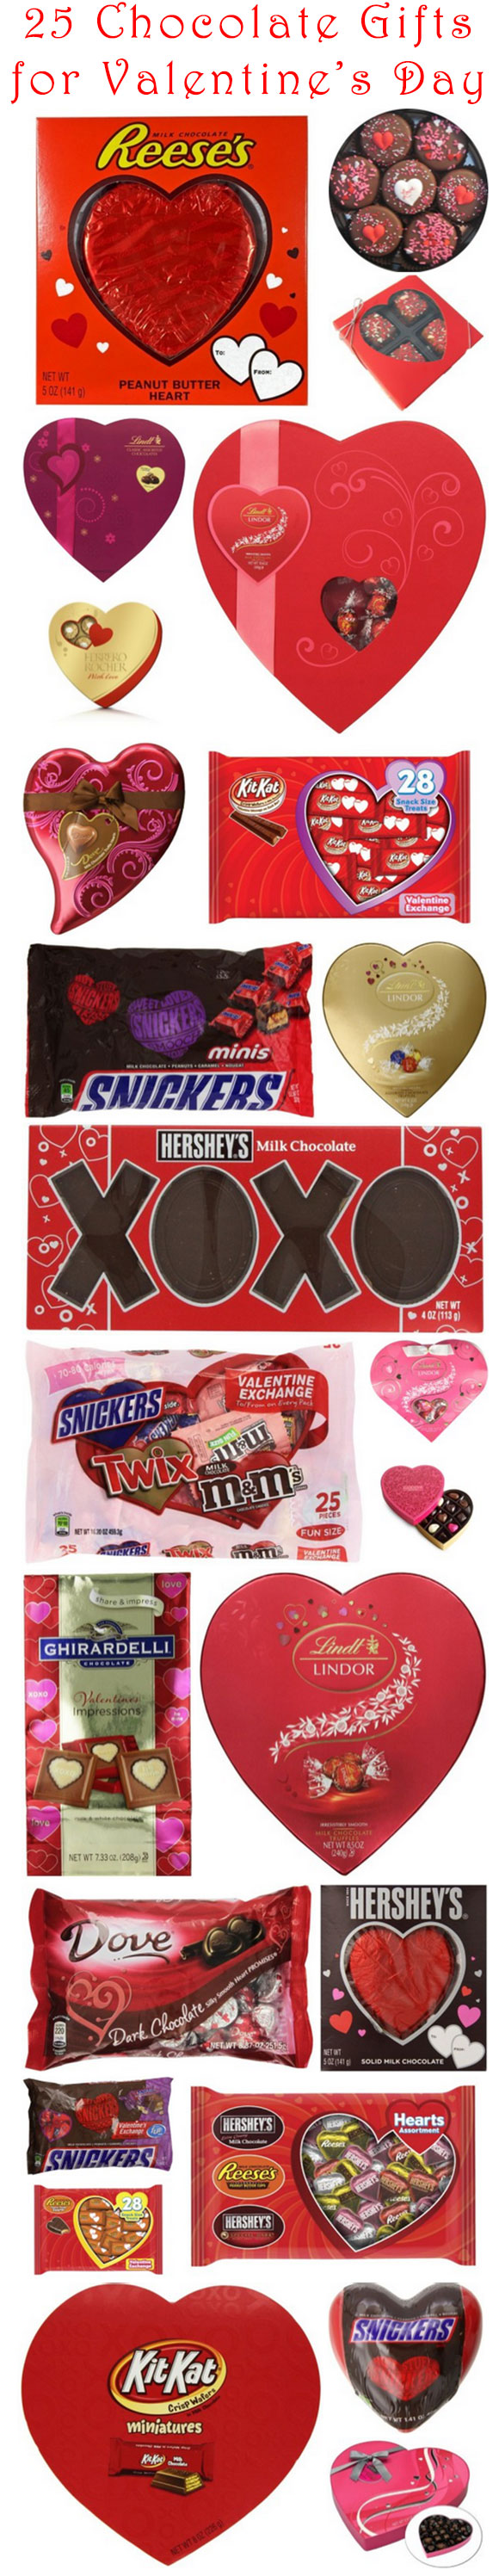 25 Chocolate Gifts to Give Your Sweetheart This Valentine's Day